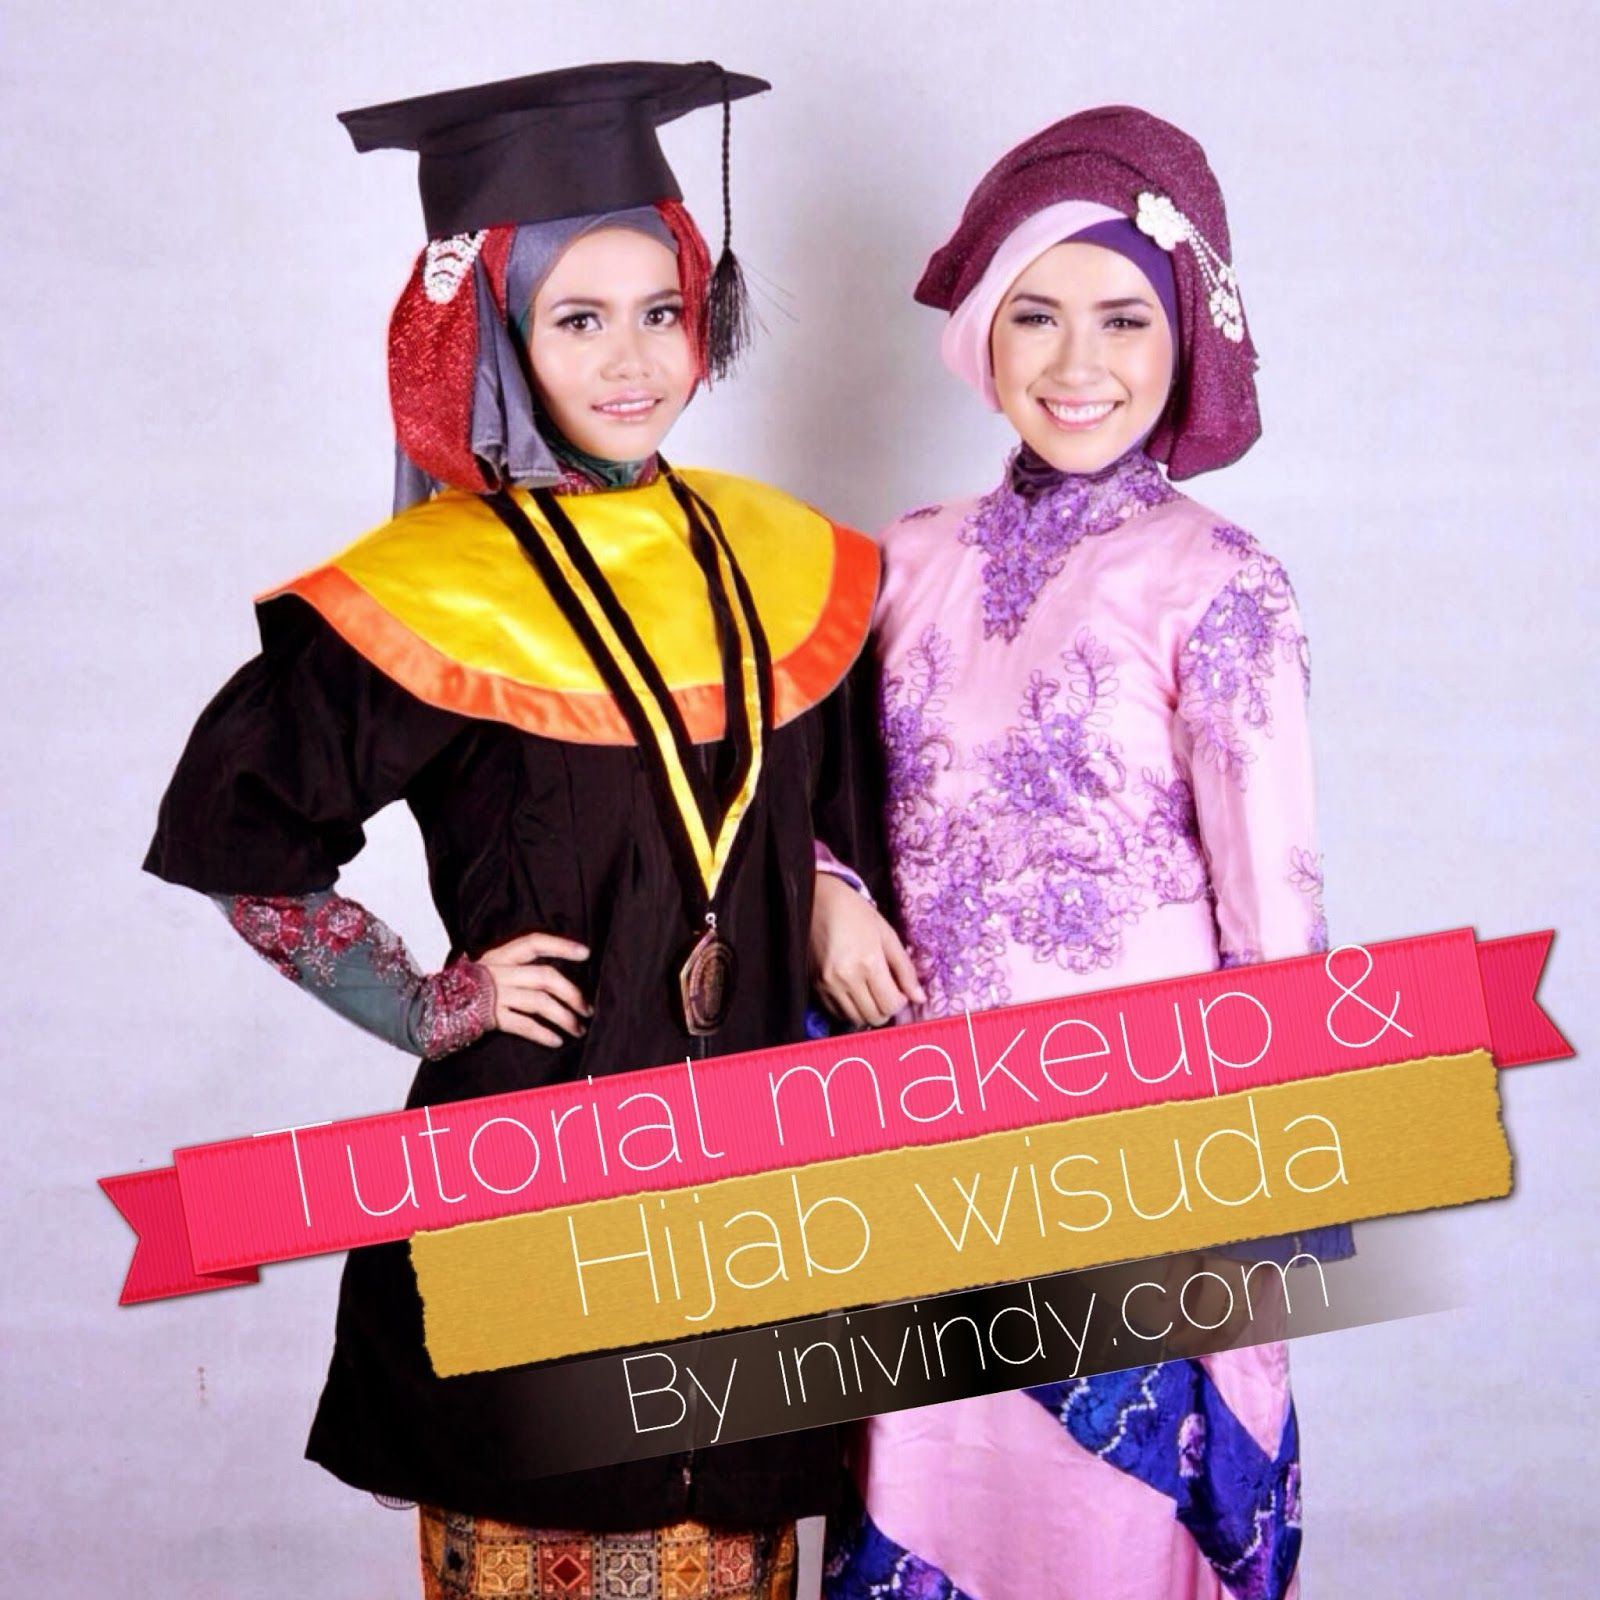 Make Up Wisuda For Graduation Pinterest Hijabs And Make Up